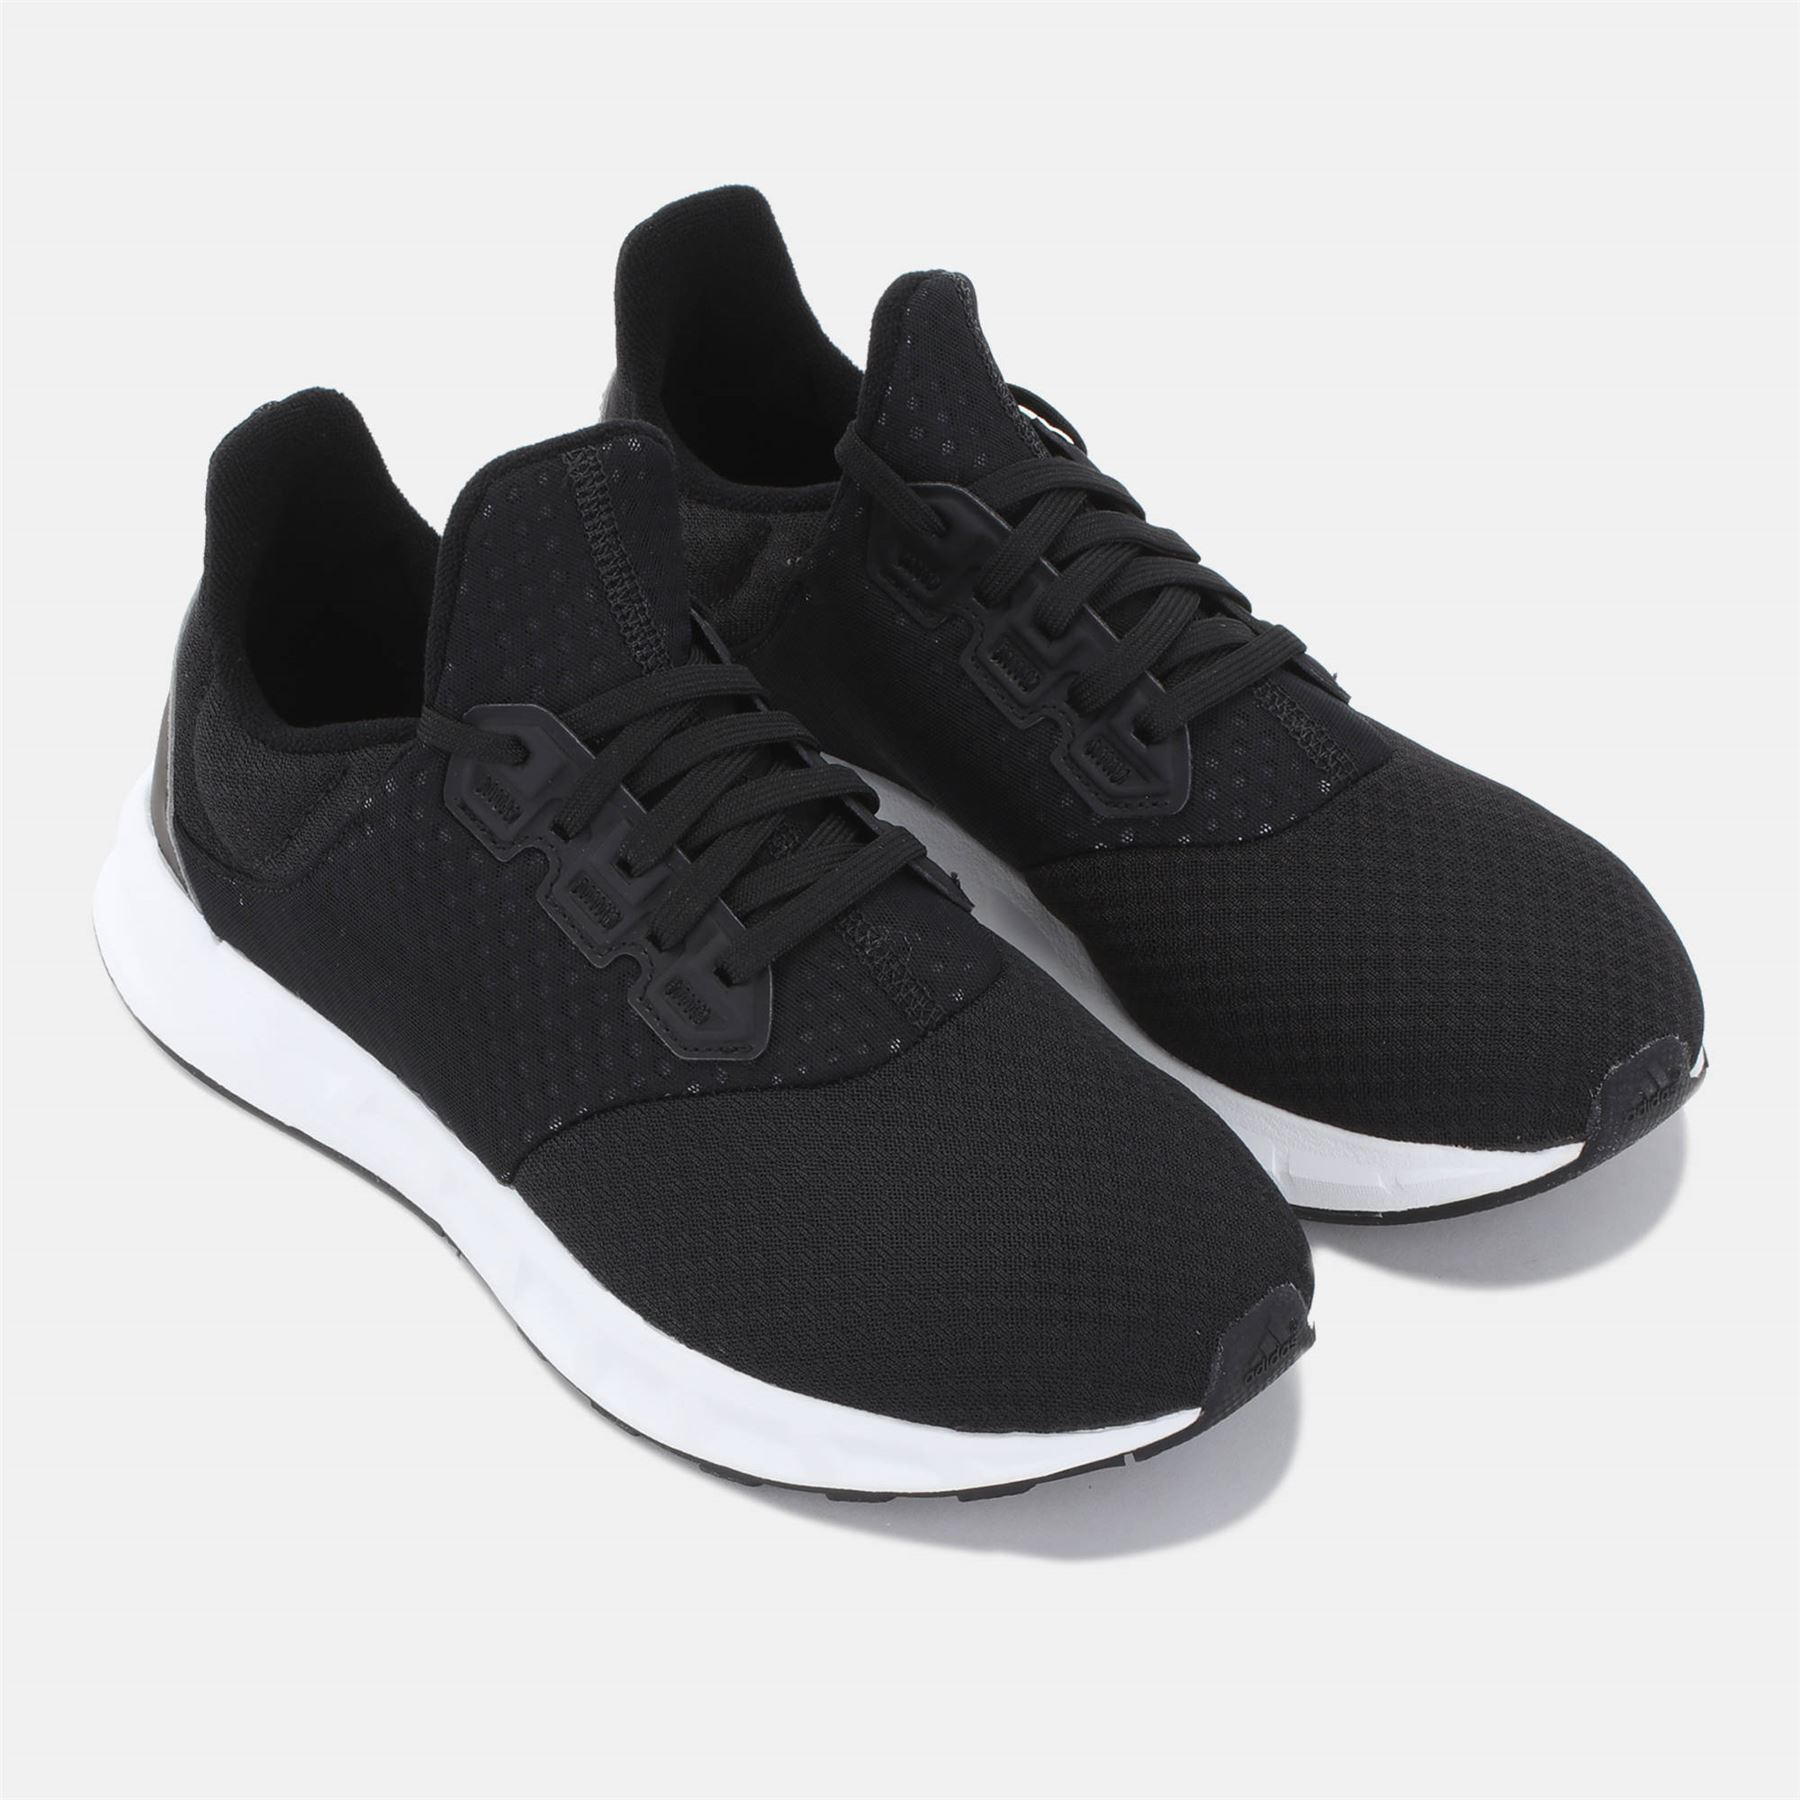 2753c4b8862 ... adidas Falcon Elite 5 Running Shoes Womens Black Fitness Trainers  Sneakers